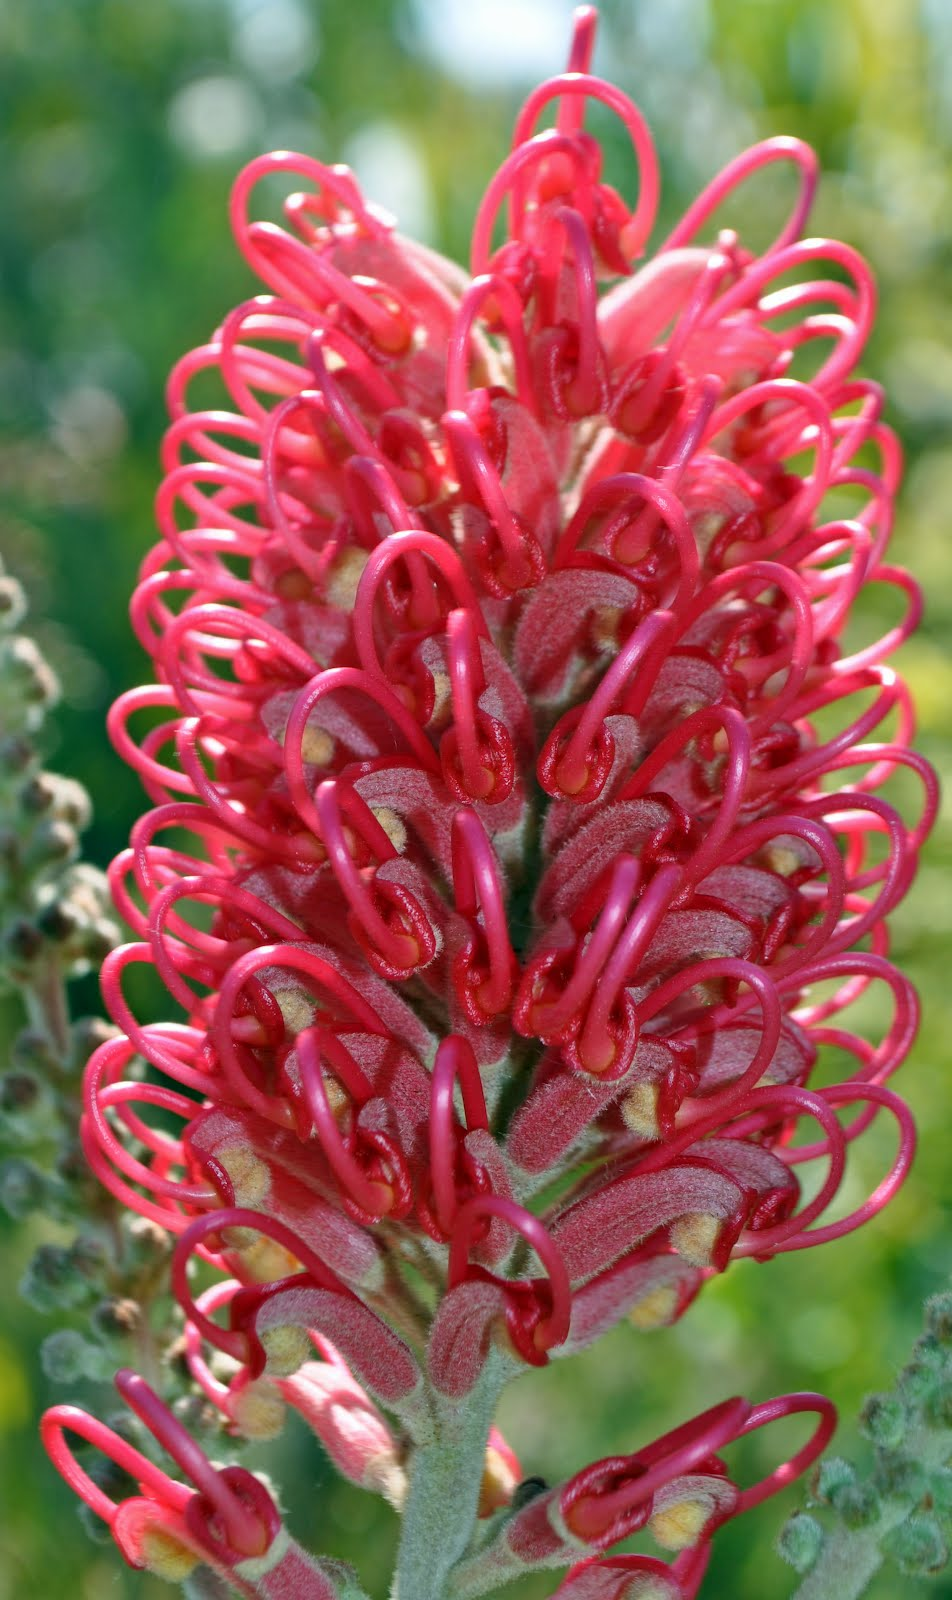 A Passion for Flowers: 5 Reasons to Love Grevillea Flowers